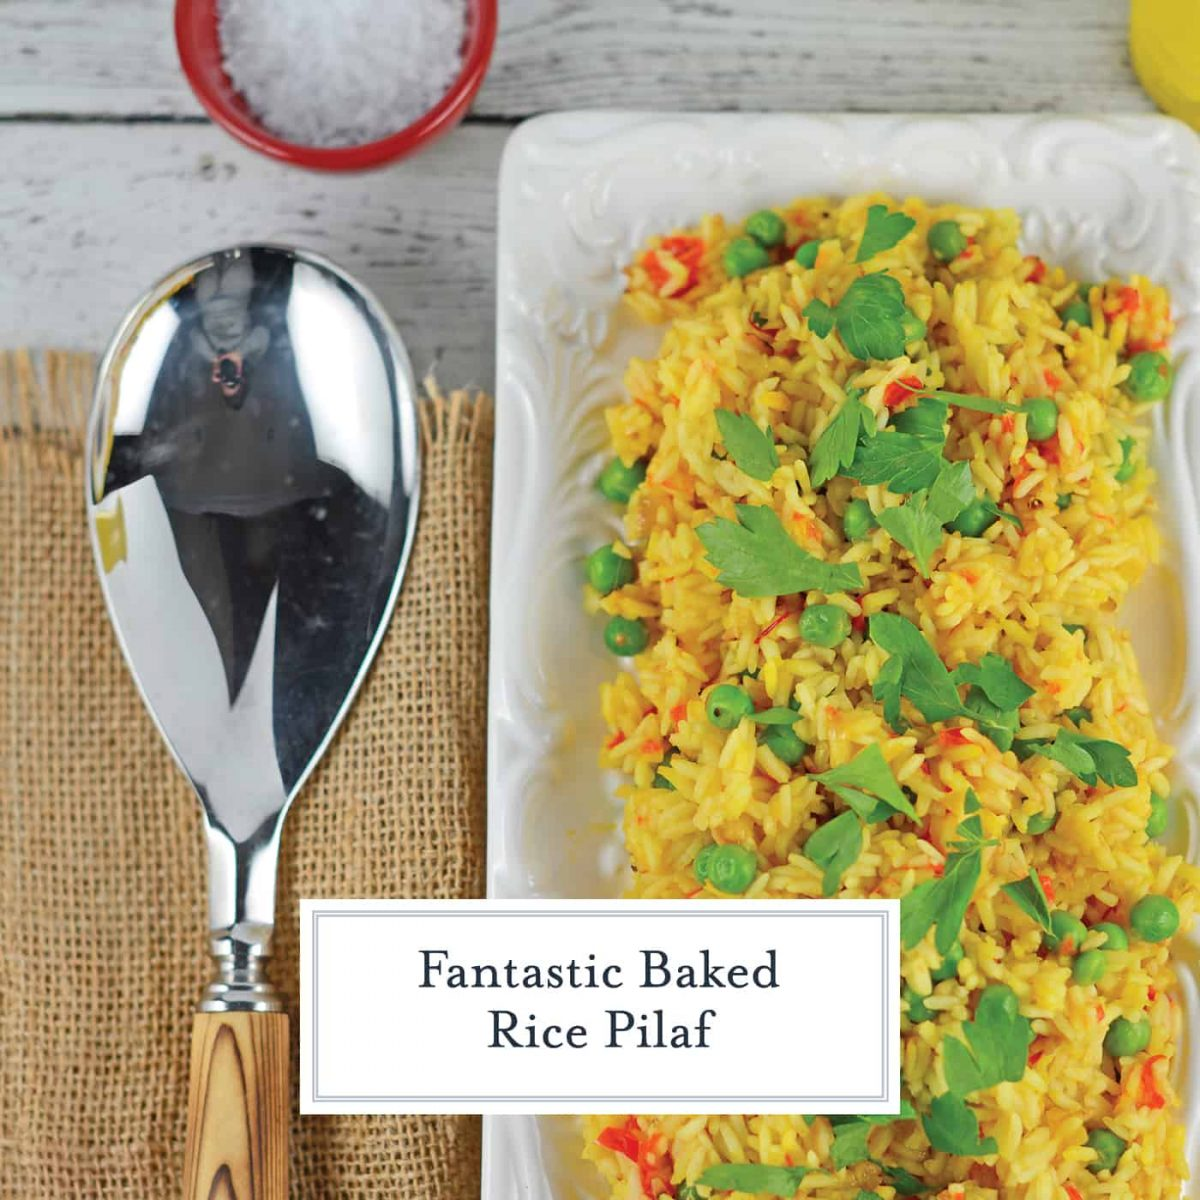 You'll never buy boxed rice pilaf ever again once you've made Bake Rice Pilaf! This is a fool proof way of getting the perfect rice every time… in the oven!